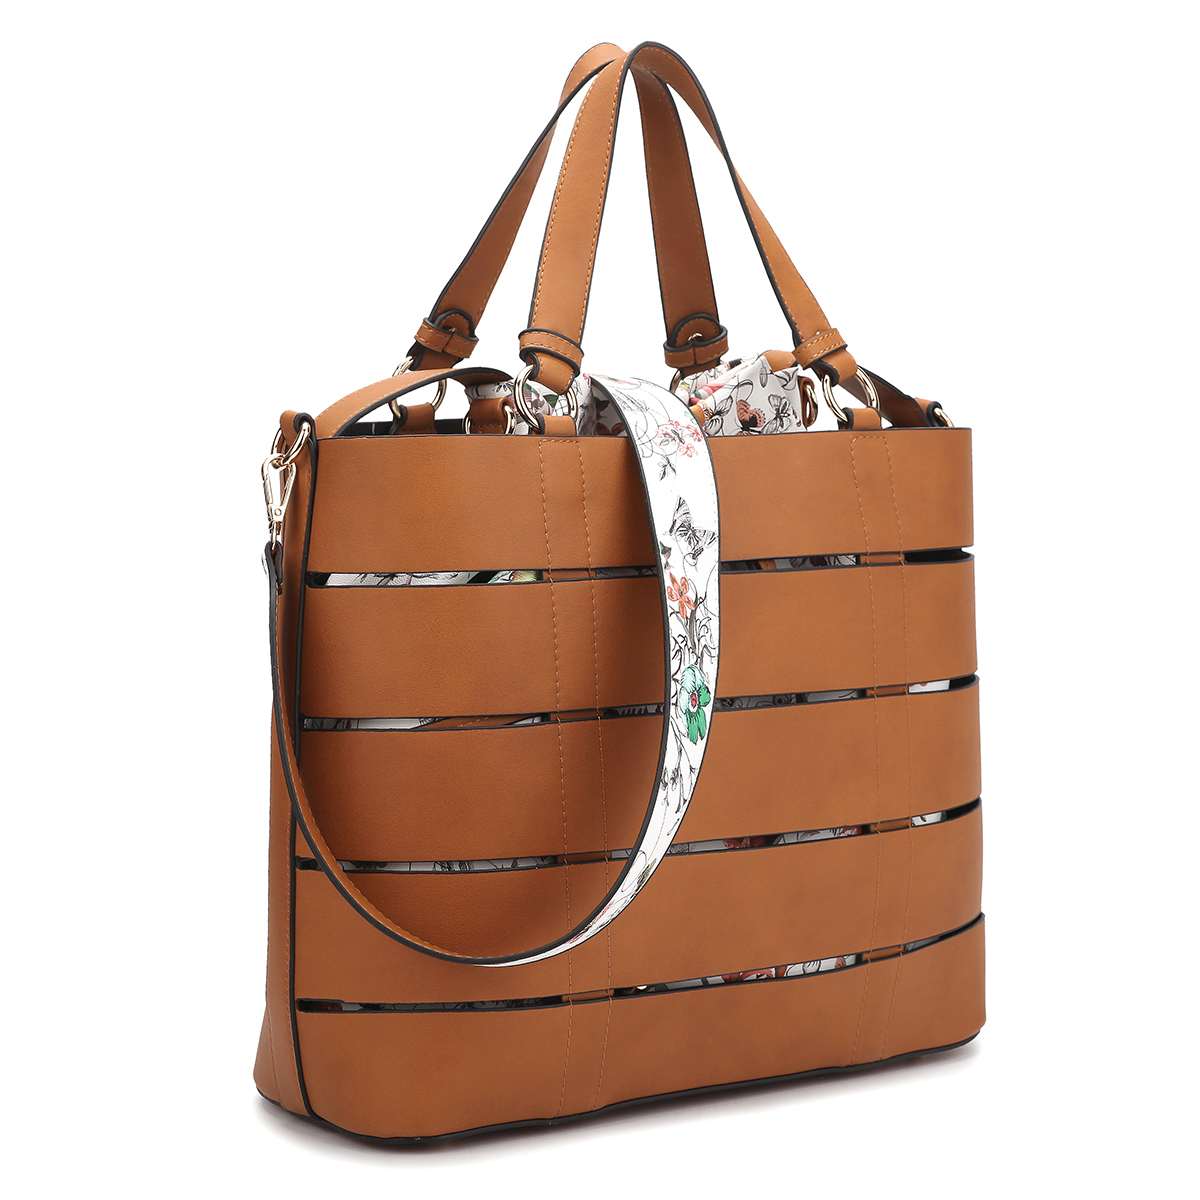 Dasein Two-in-One Faux Leather Medium Tote